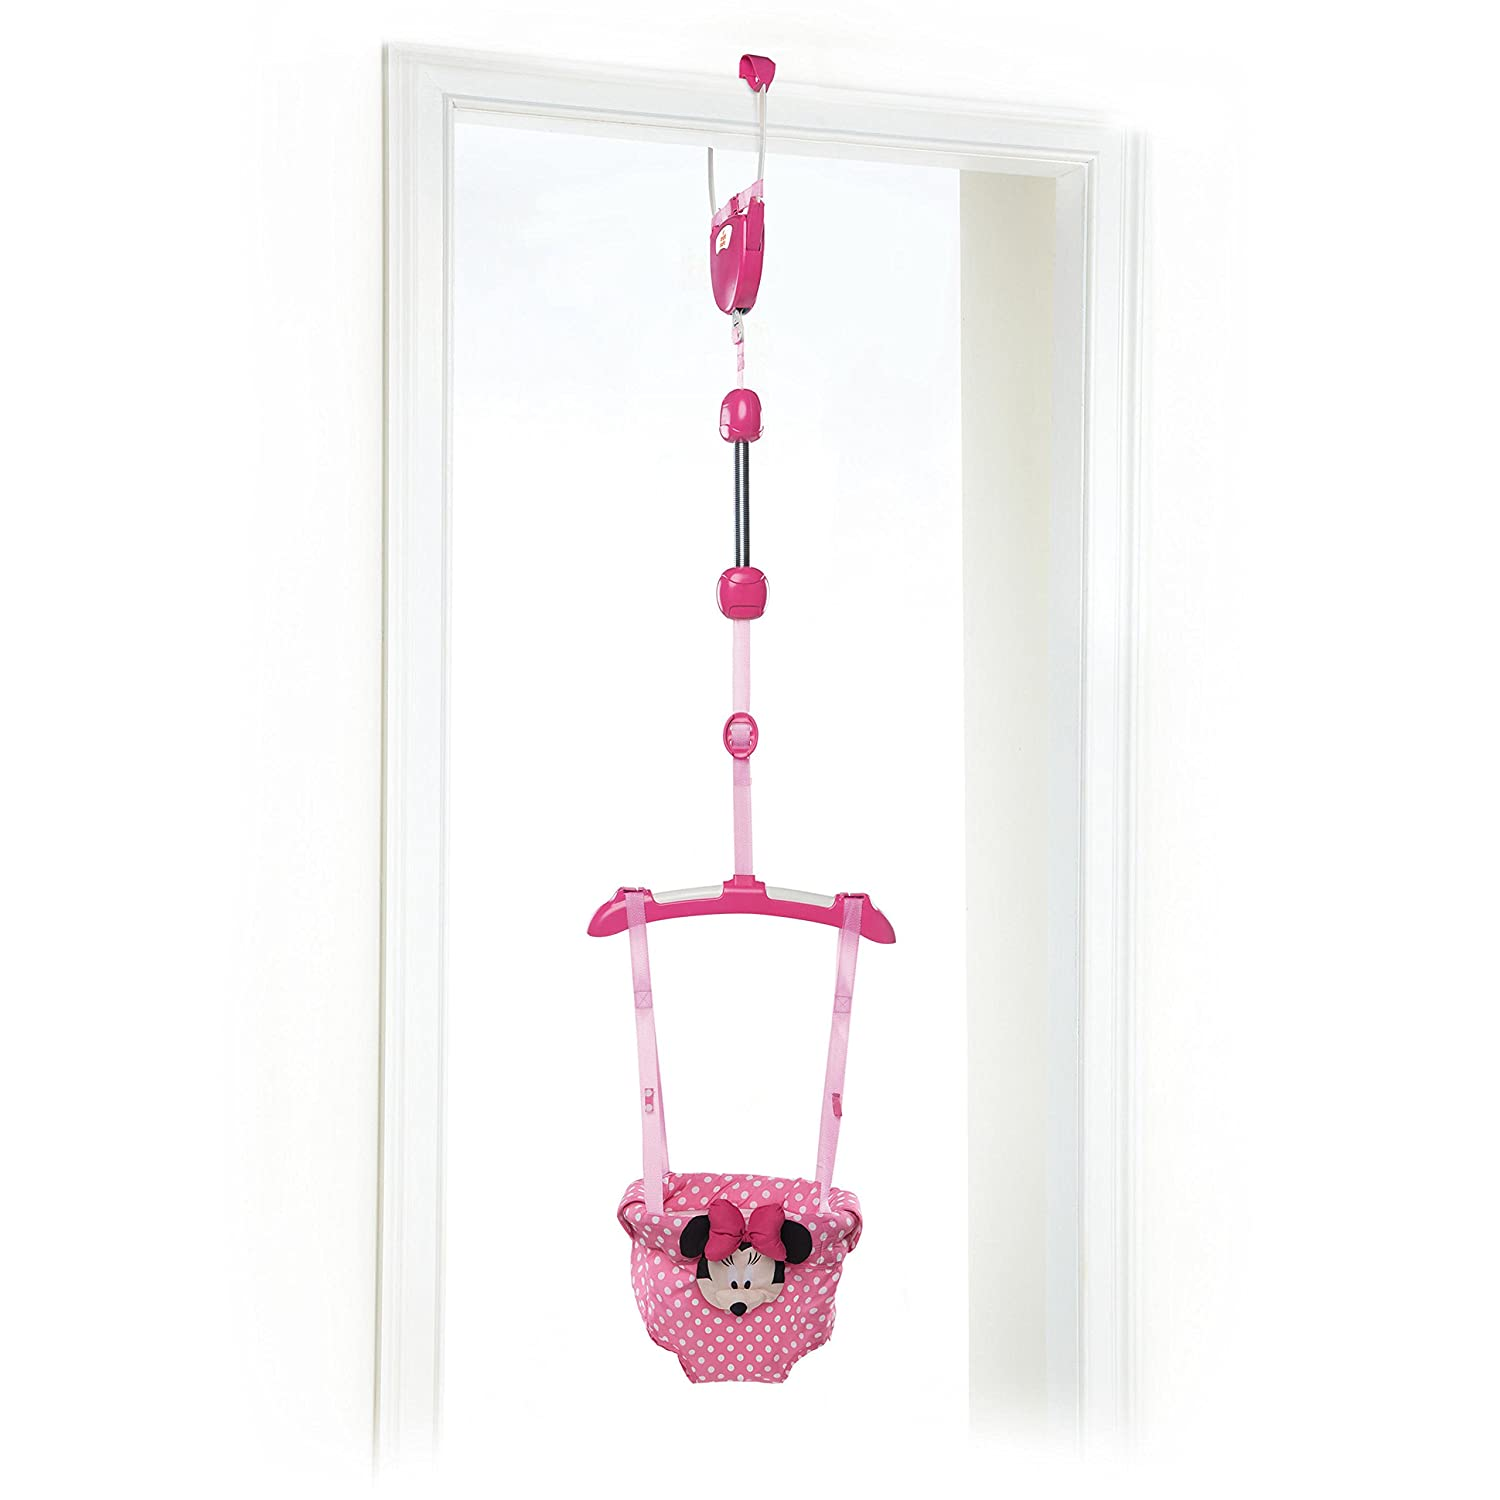 Disney Baby Door Jumper, Minnie Mouse 10782